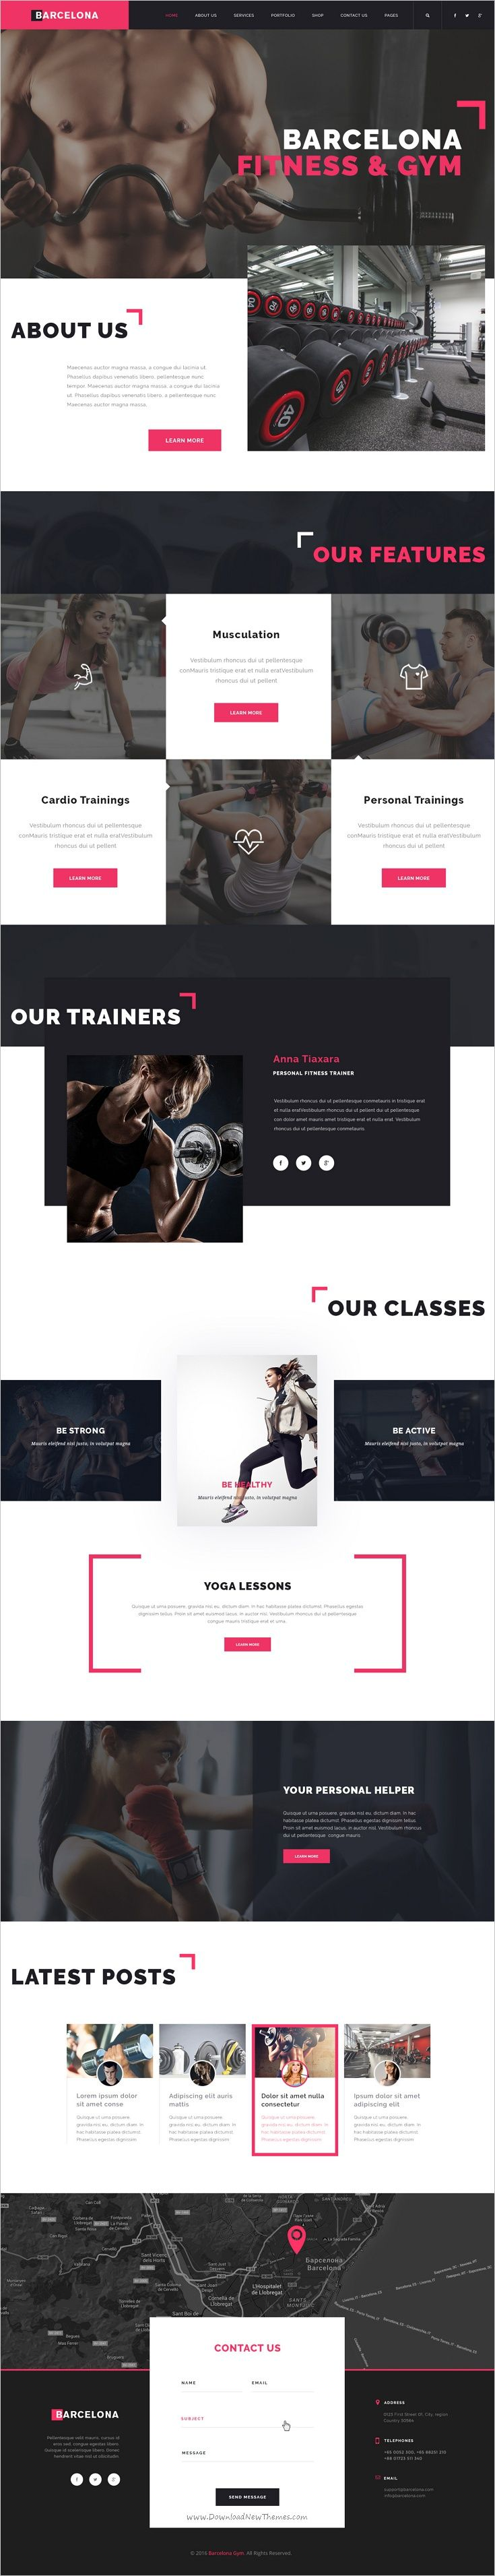 Barcelona is a clean, pixel perfect and modern #PSD Template suitable for #webdev Gym, #Fitness Center, Health #Clubs or Dance Studios website download now➩ https://themeforest.net/item/fitness-healthy-center-psd-template-barcelona/18655548?ref=Datasata